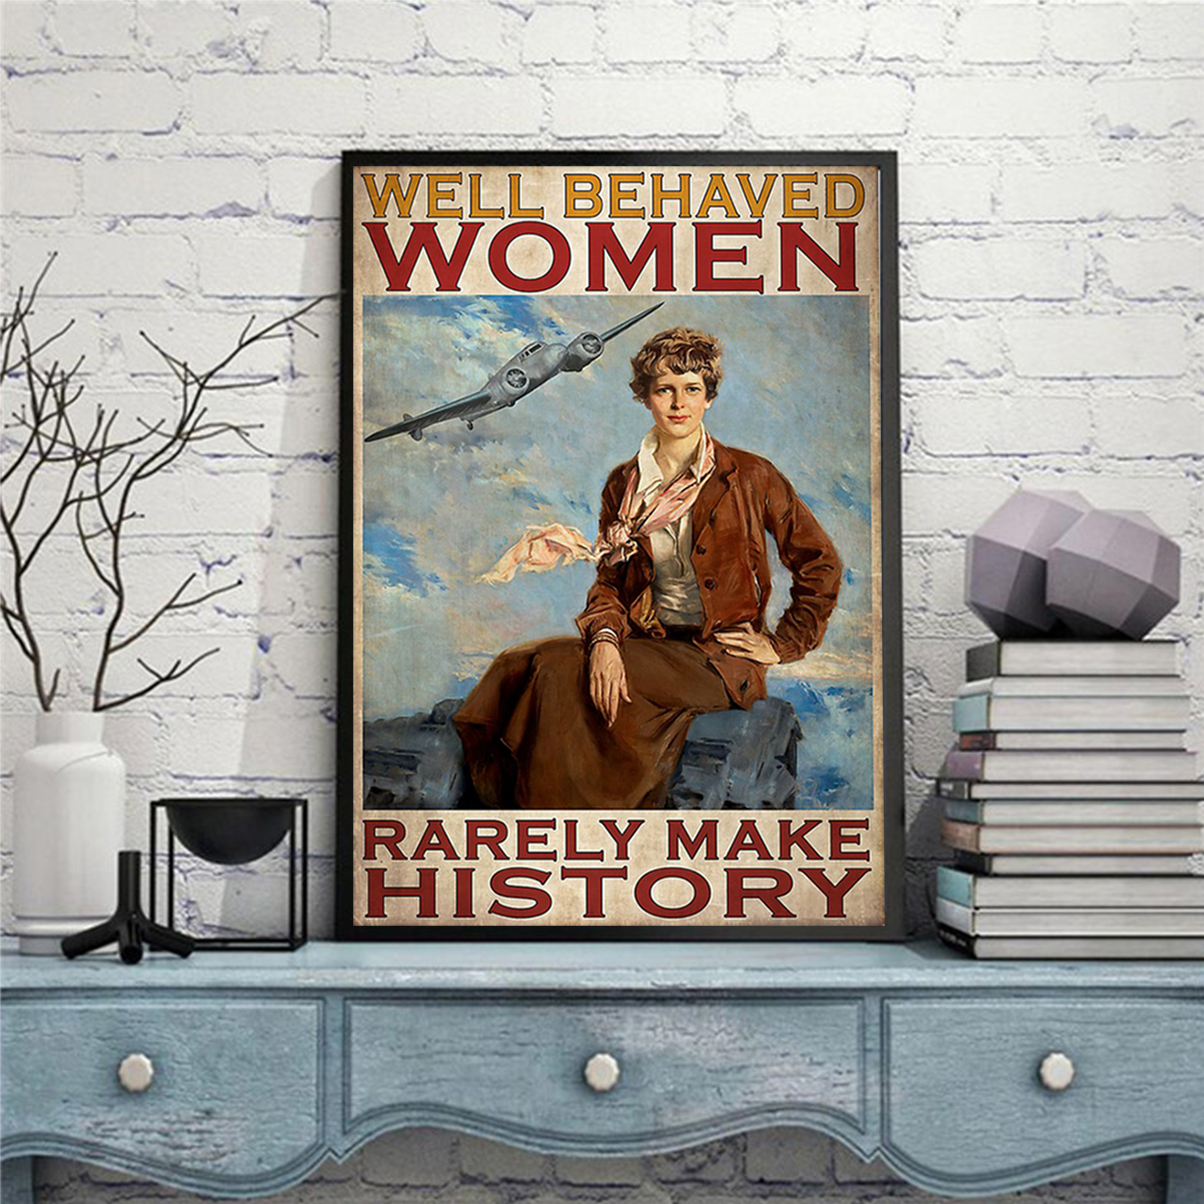 Flight attendant well behaved women rarely make history poster A3